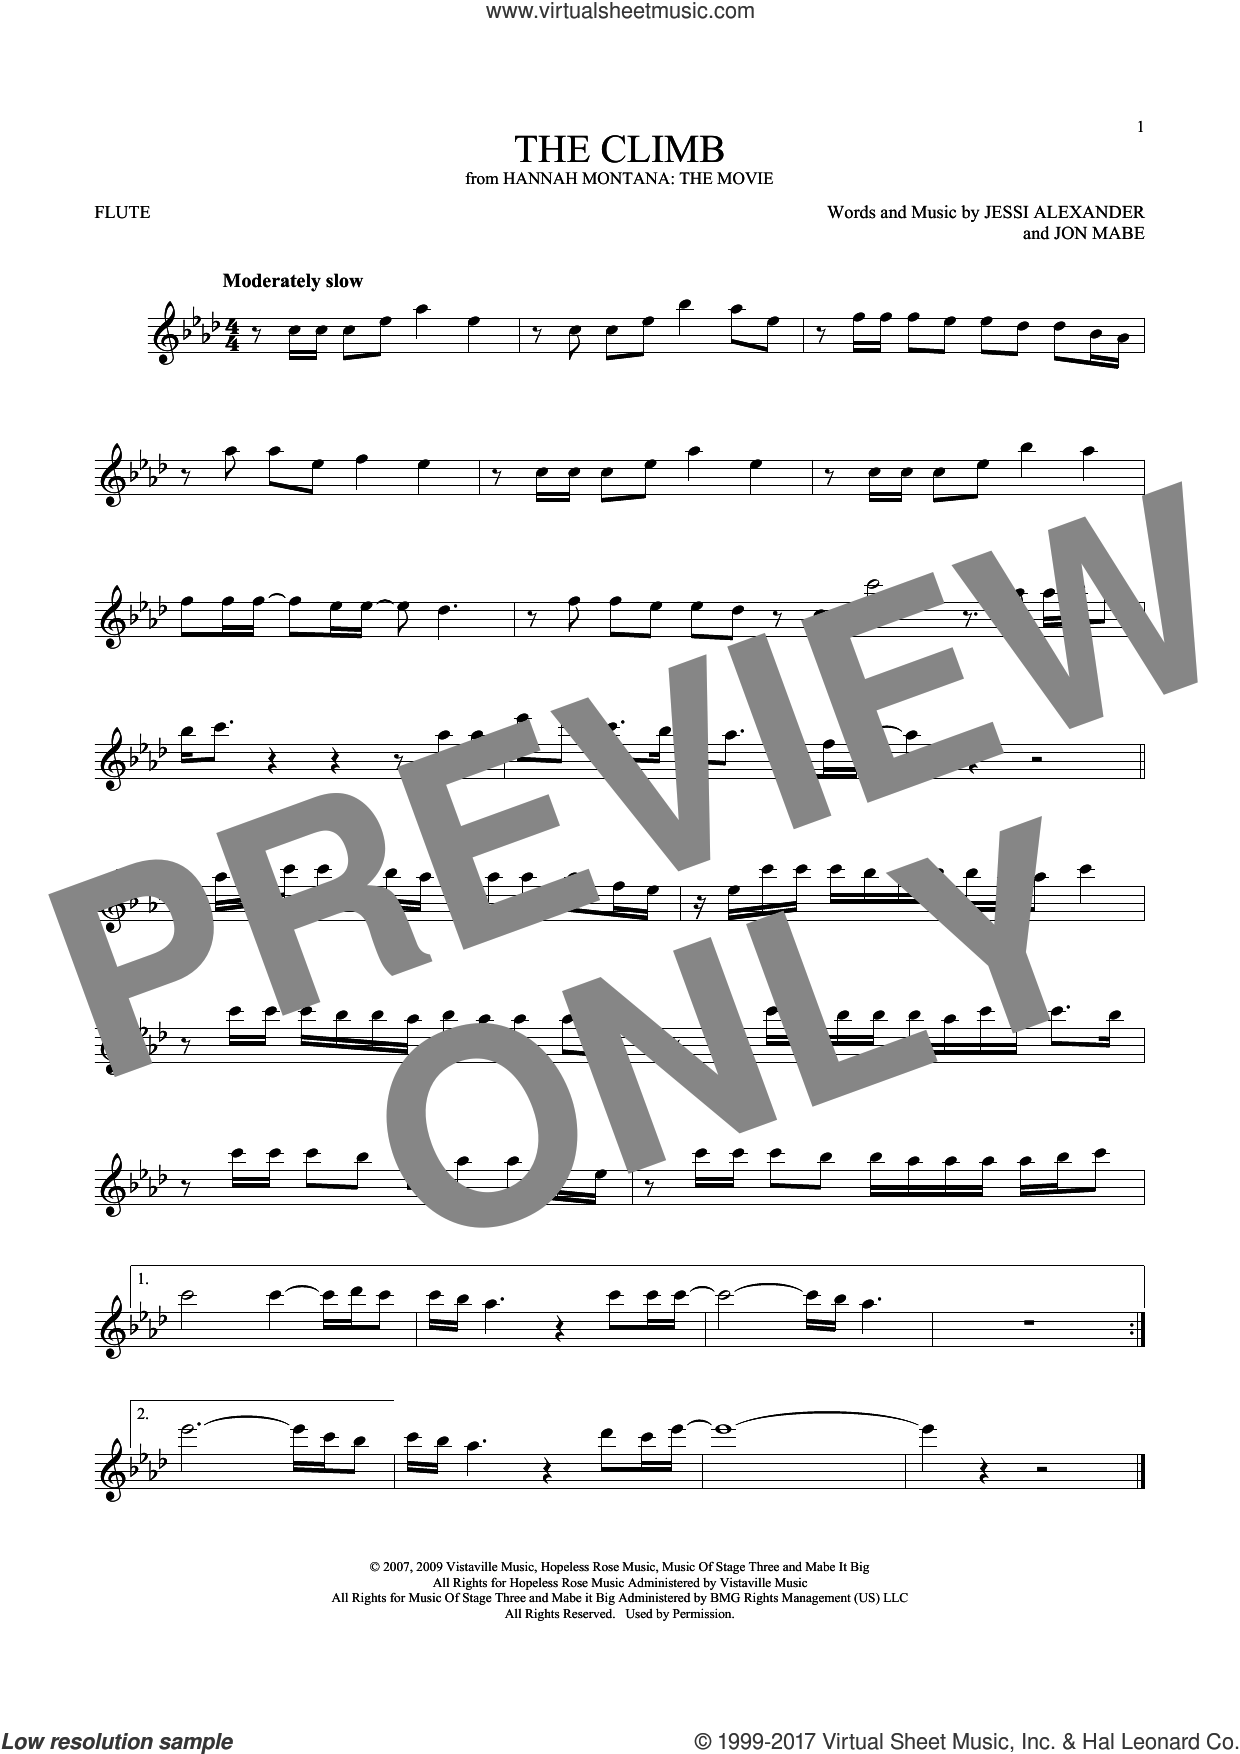 The Climb sheet music for flute solo by Miley Cyrus, Jessi Alexander and Jon Mabe, intermediate skill level